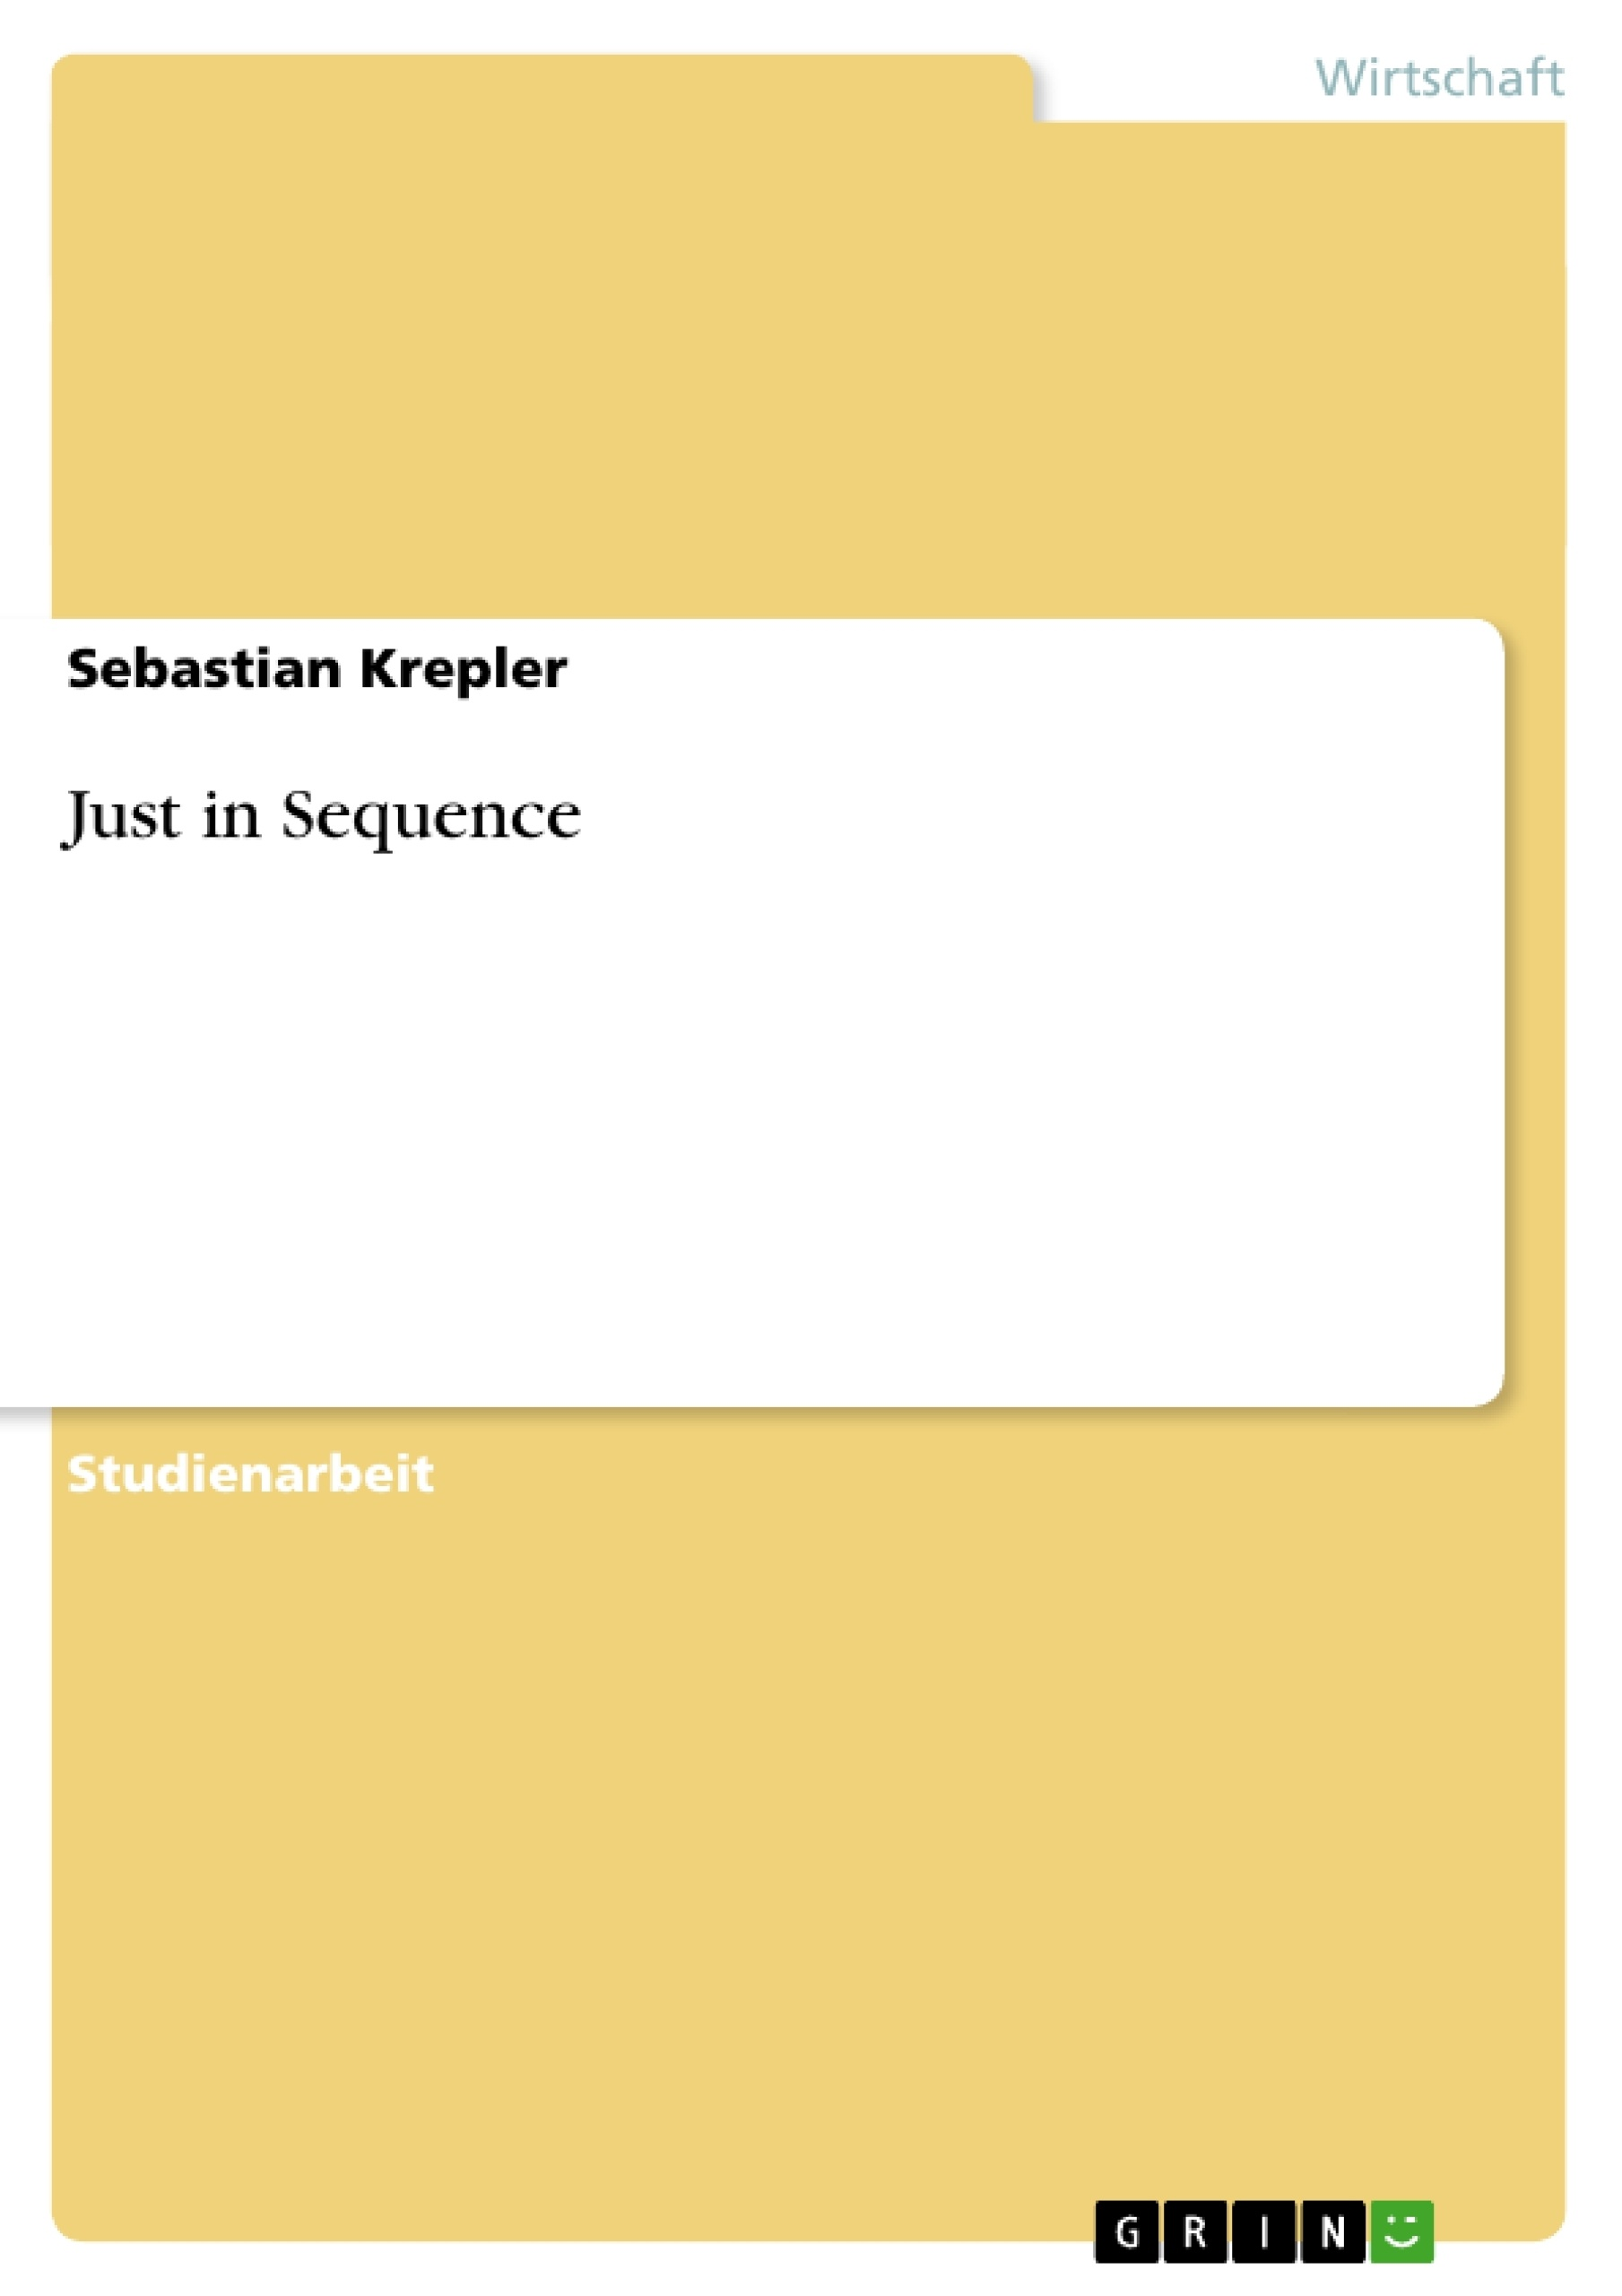 Titel: Just in Sequence